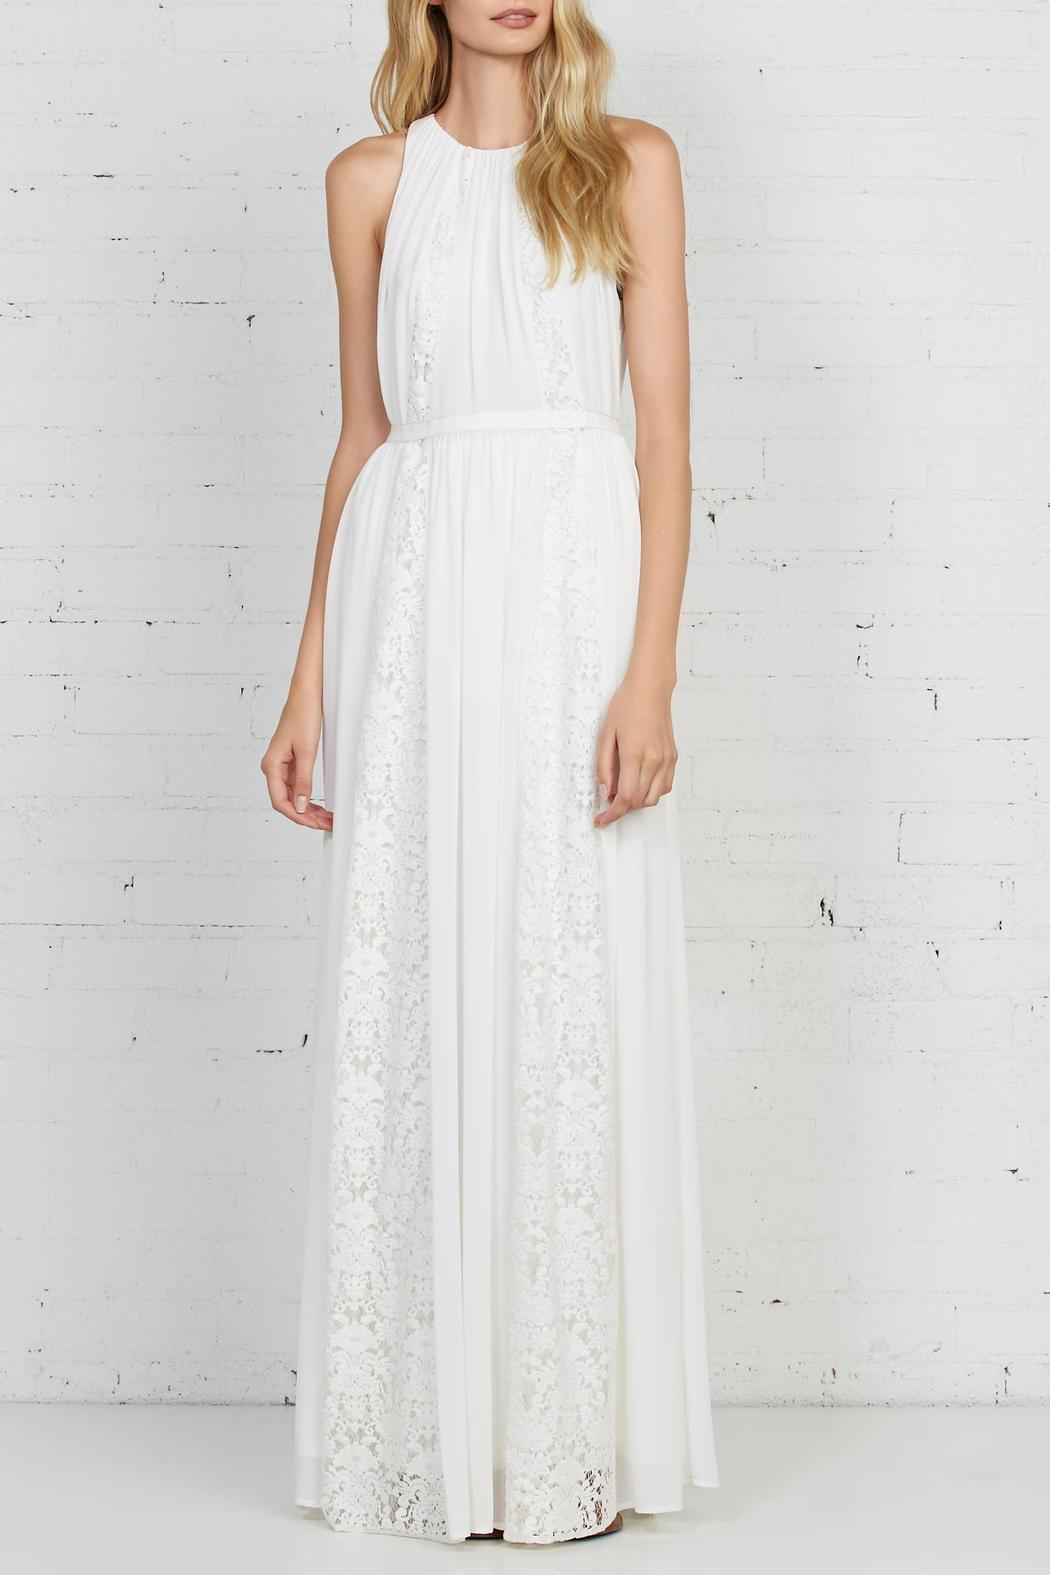 Bailey 44 Lace Maxi Dress - Front Cropped Image